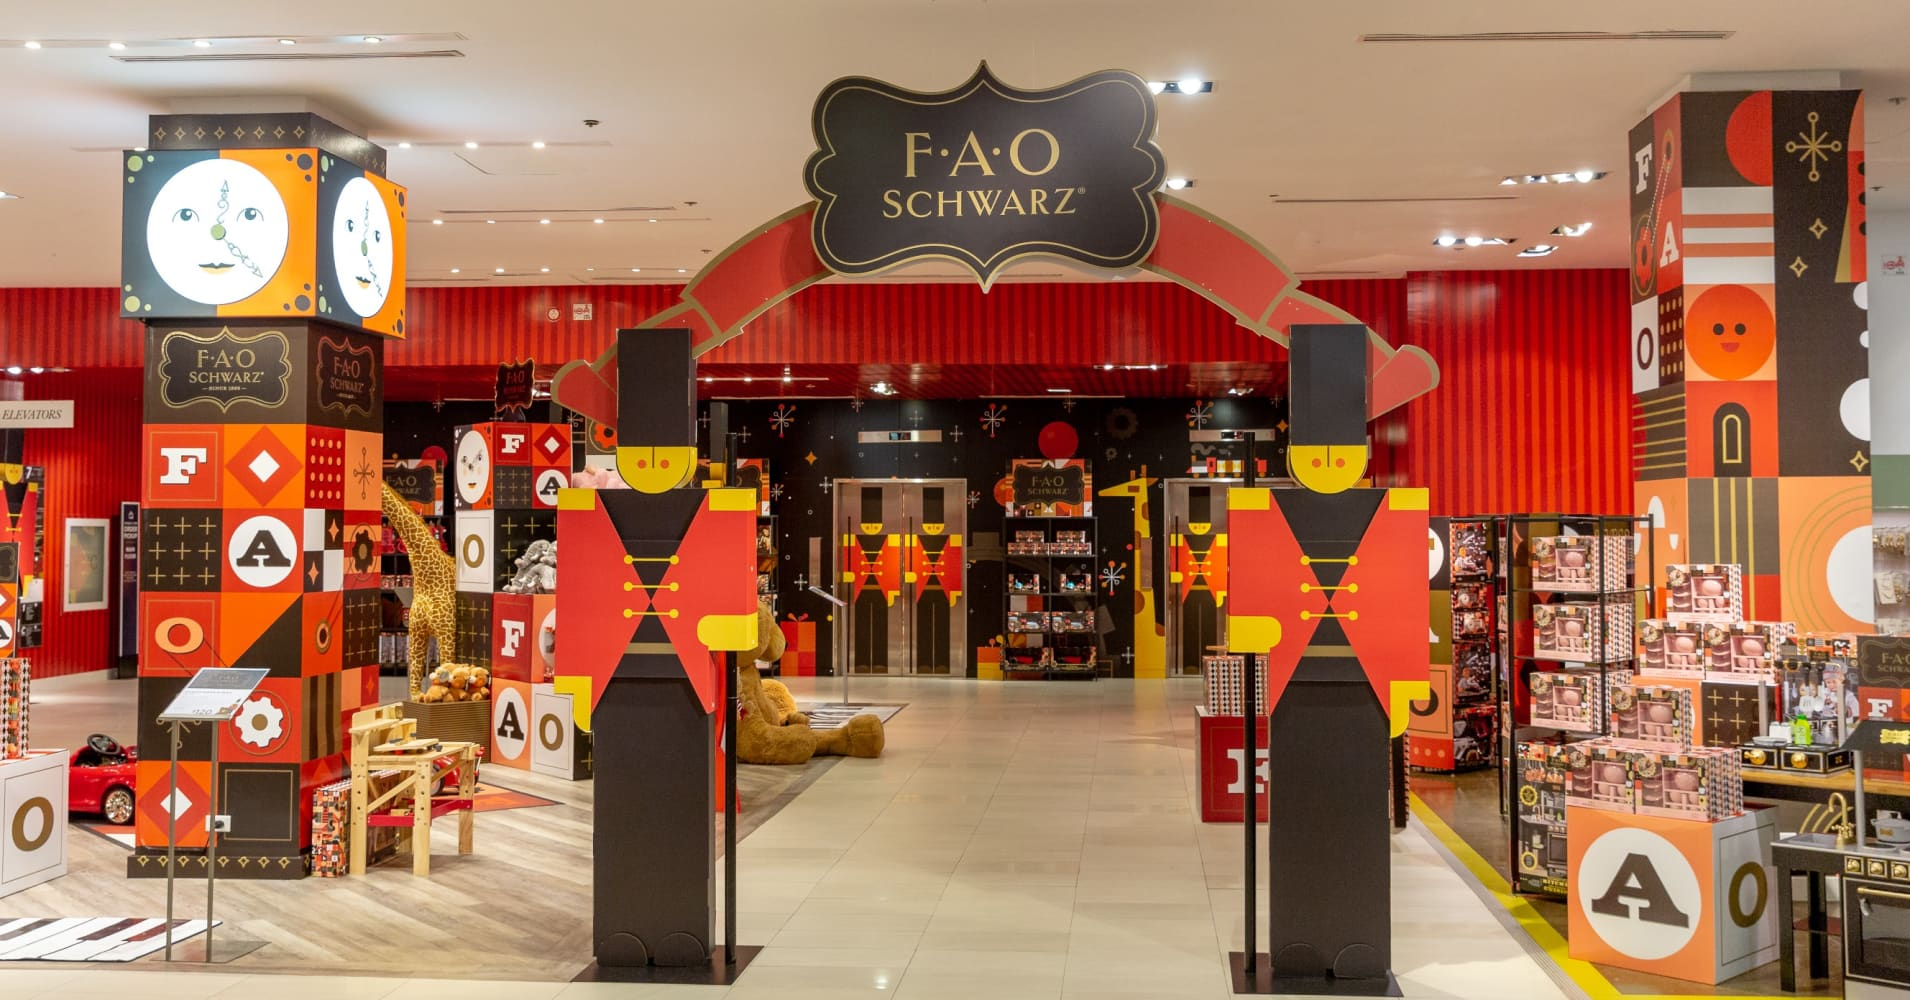 FAO Schwarz makes its return to New York. Here's what its new store looks like inside